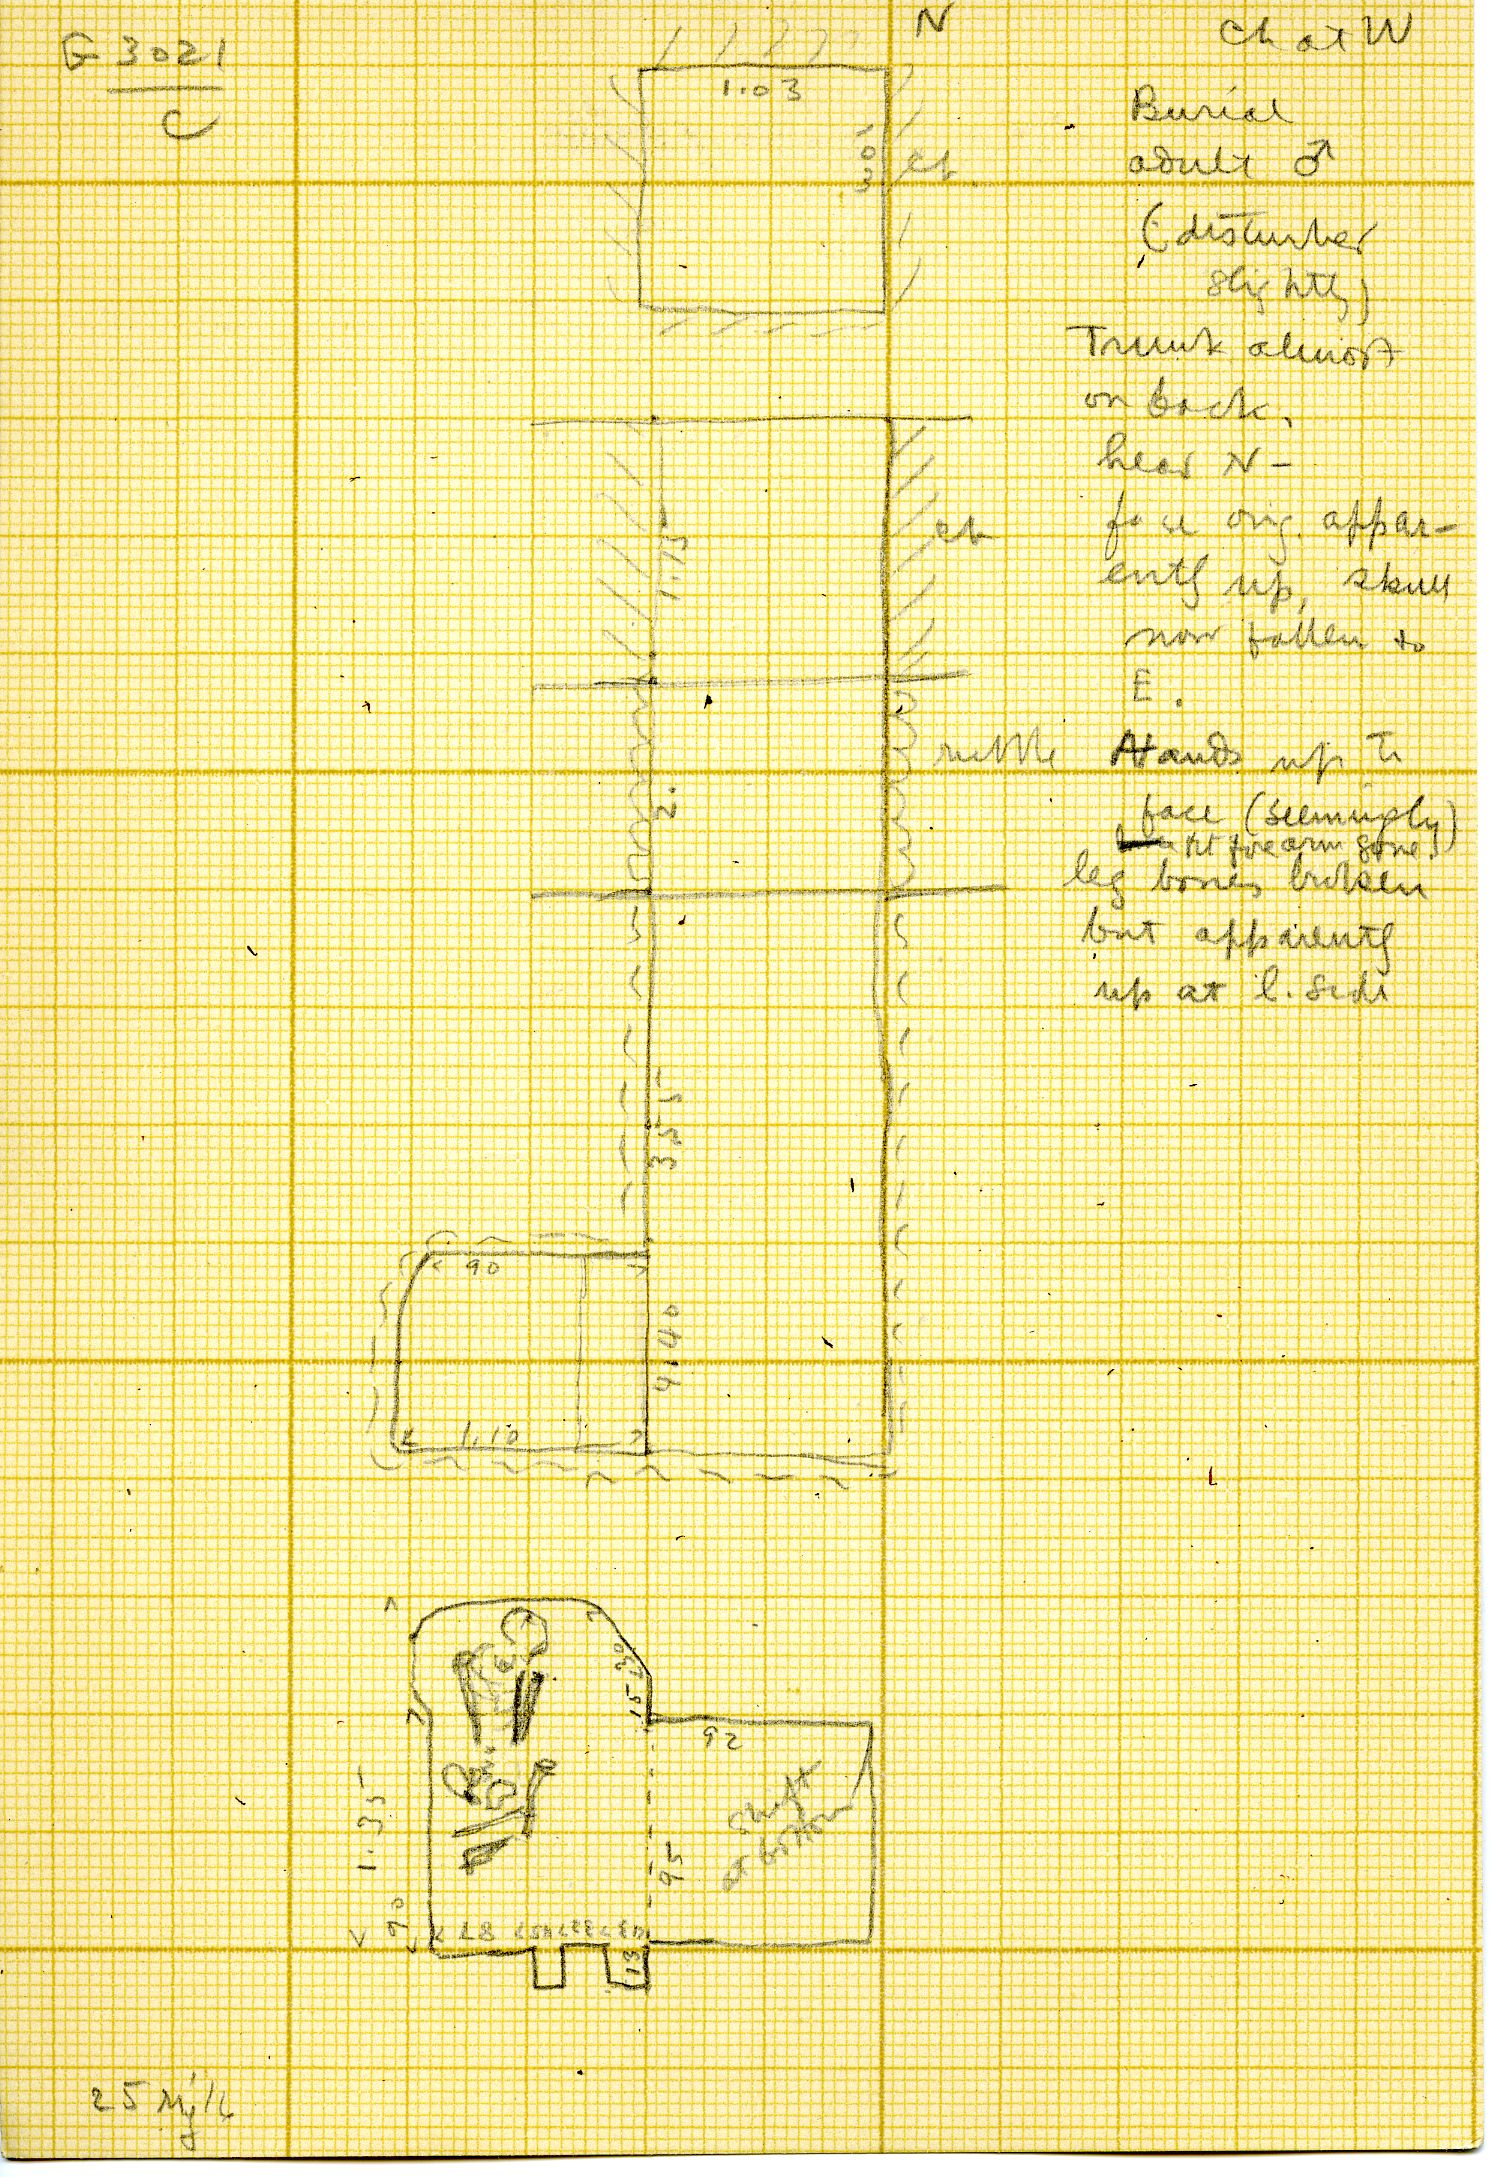 Maps and plans: G 3021, Shaft C